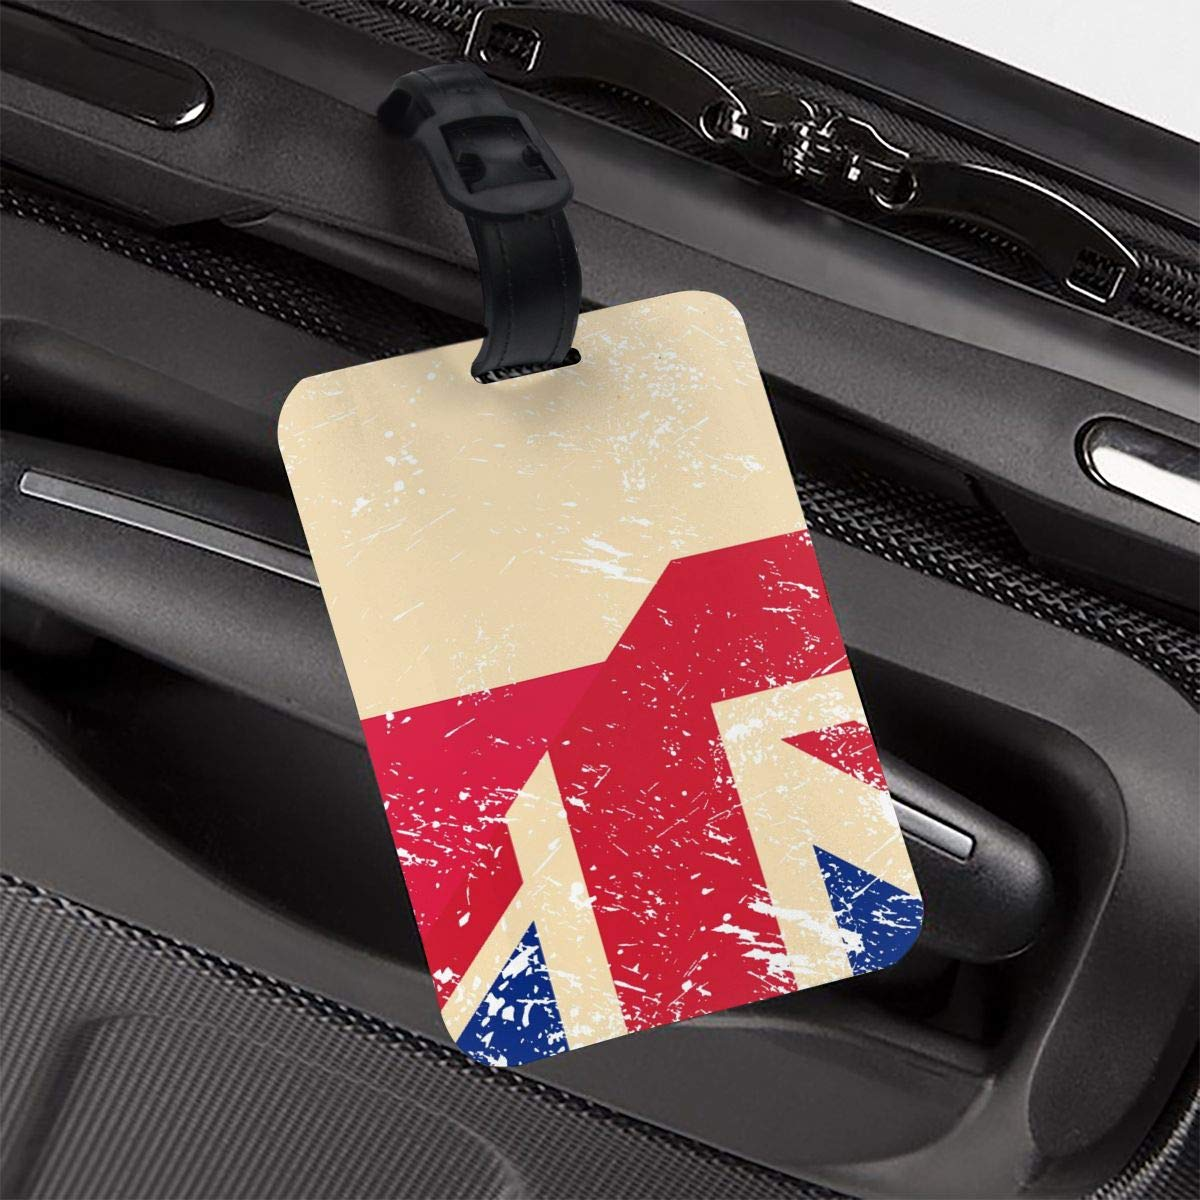 NB UUD Birtish and Poland Retro Flag Travel Luggage Tag Fashionable Employees Card Luggage Tag Holders Travel ID Identification Labels for Baggage Suitcases Bags